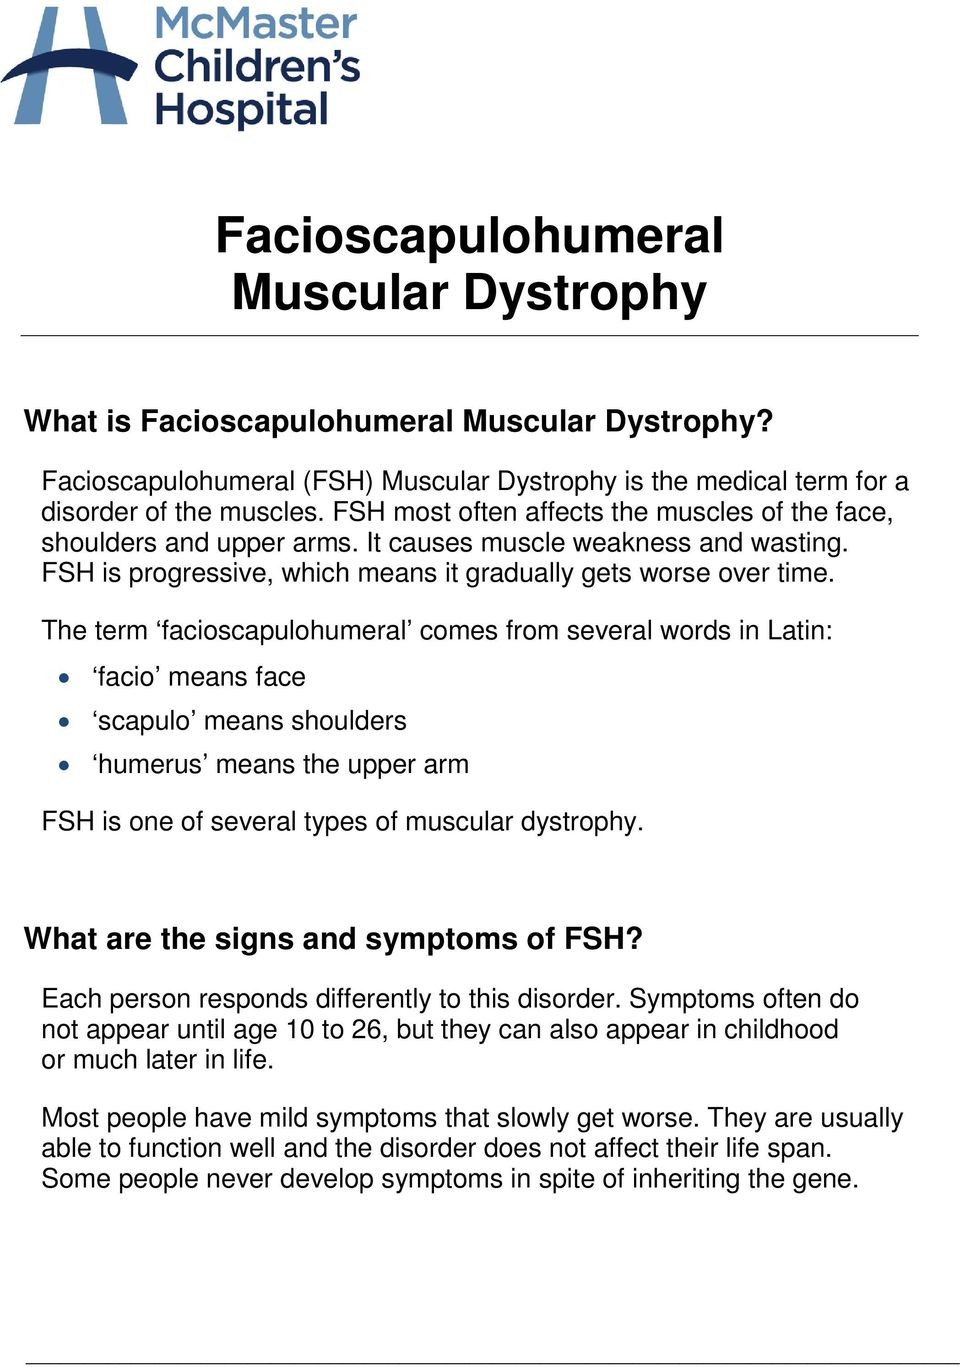 The term facioscapulohumeral comes from several words in Latin: facio means face scapulo means shoulders humerus means the upper arm FSH is one of several types of muscular dystrophy.